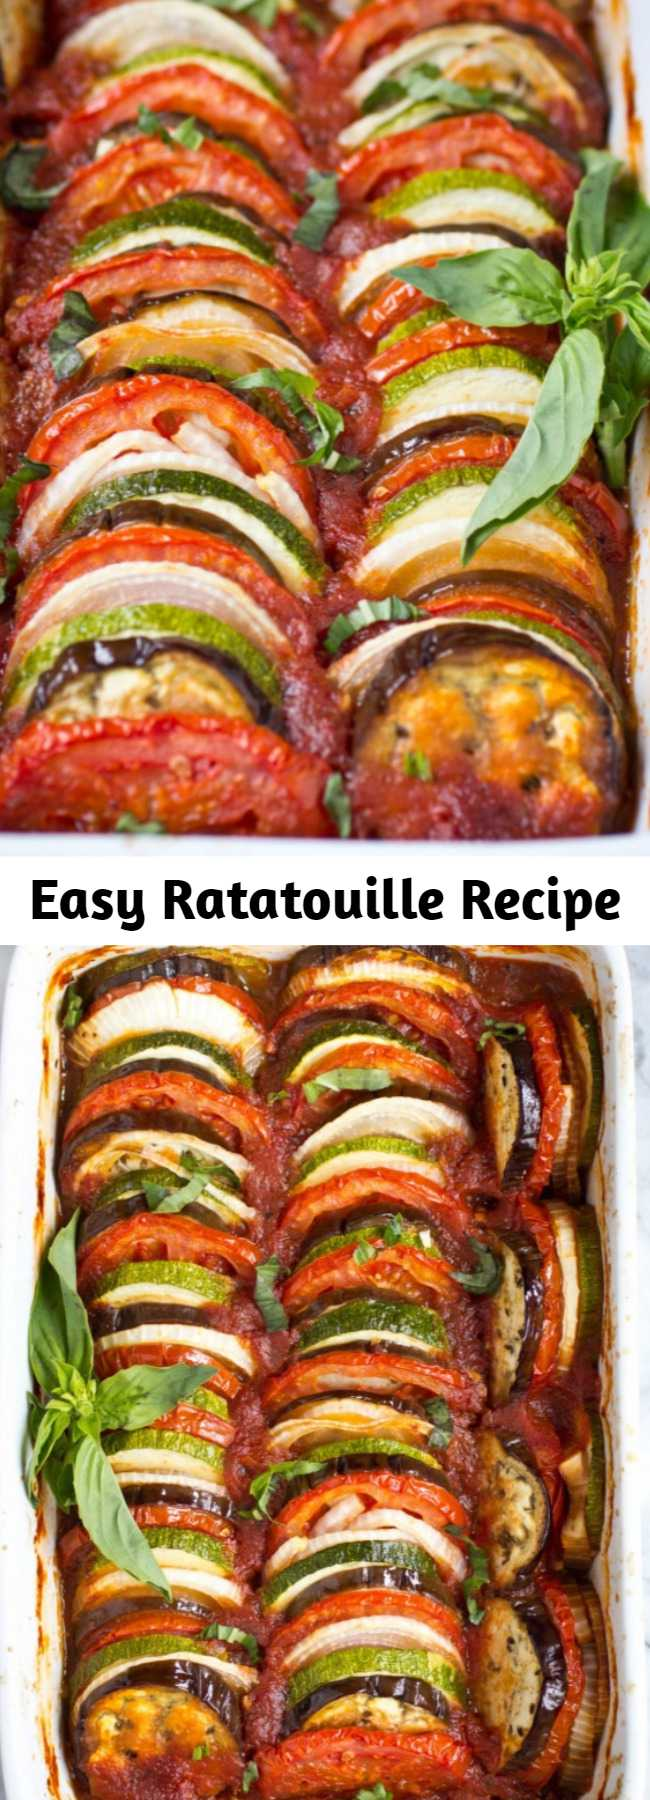 Easy Ratatouille Recipe - This Ratatouille recipe comes together quickly for a fresh weeknight dinner. Plus, it's suitable for gluten free, paleo and vegan diets! It's a light & fresh dish. Plus, it freezes well – so go ahead and make a double batch! #ratatouille #glutenfreesavory #paleomeals #whole30dinner #whole30sidedish #ketodinnerrecipe #vegetarianeasyrecipes